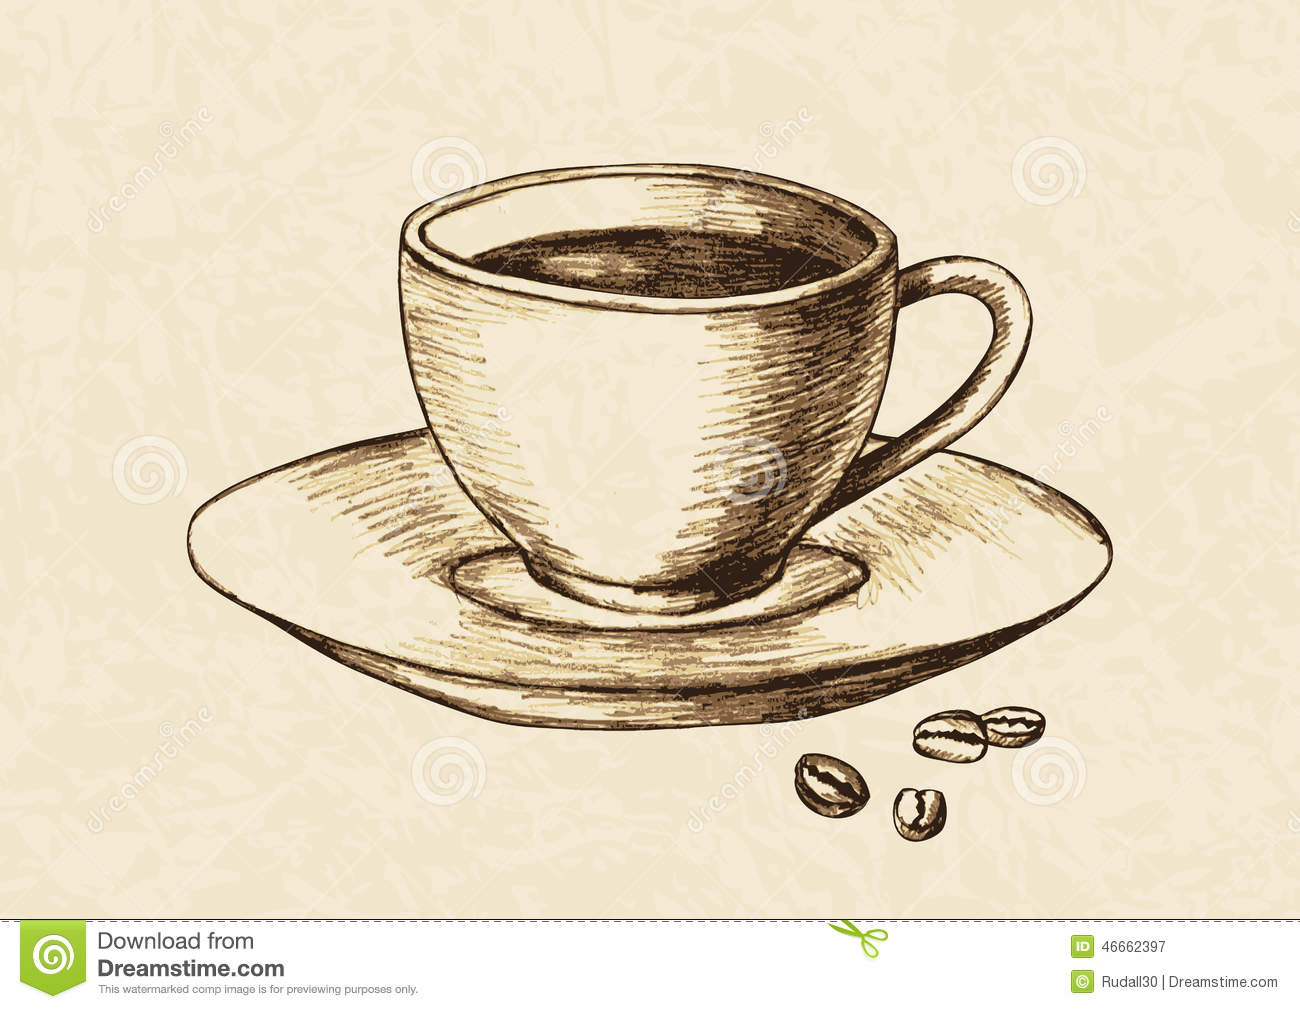 Coffee cup sketch - Royalty Free Vector Download Cup Of Coffee